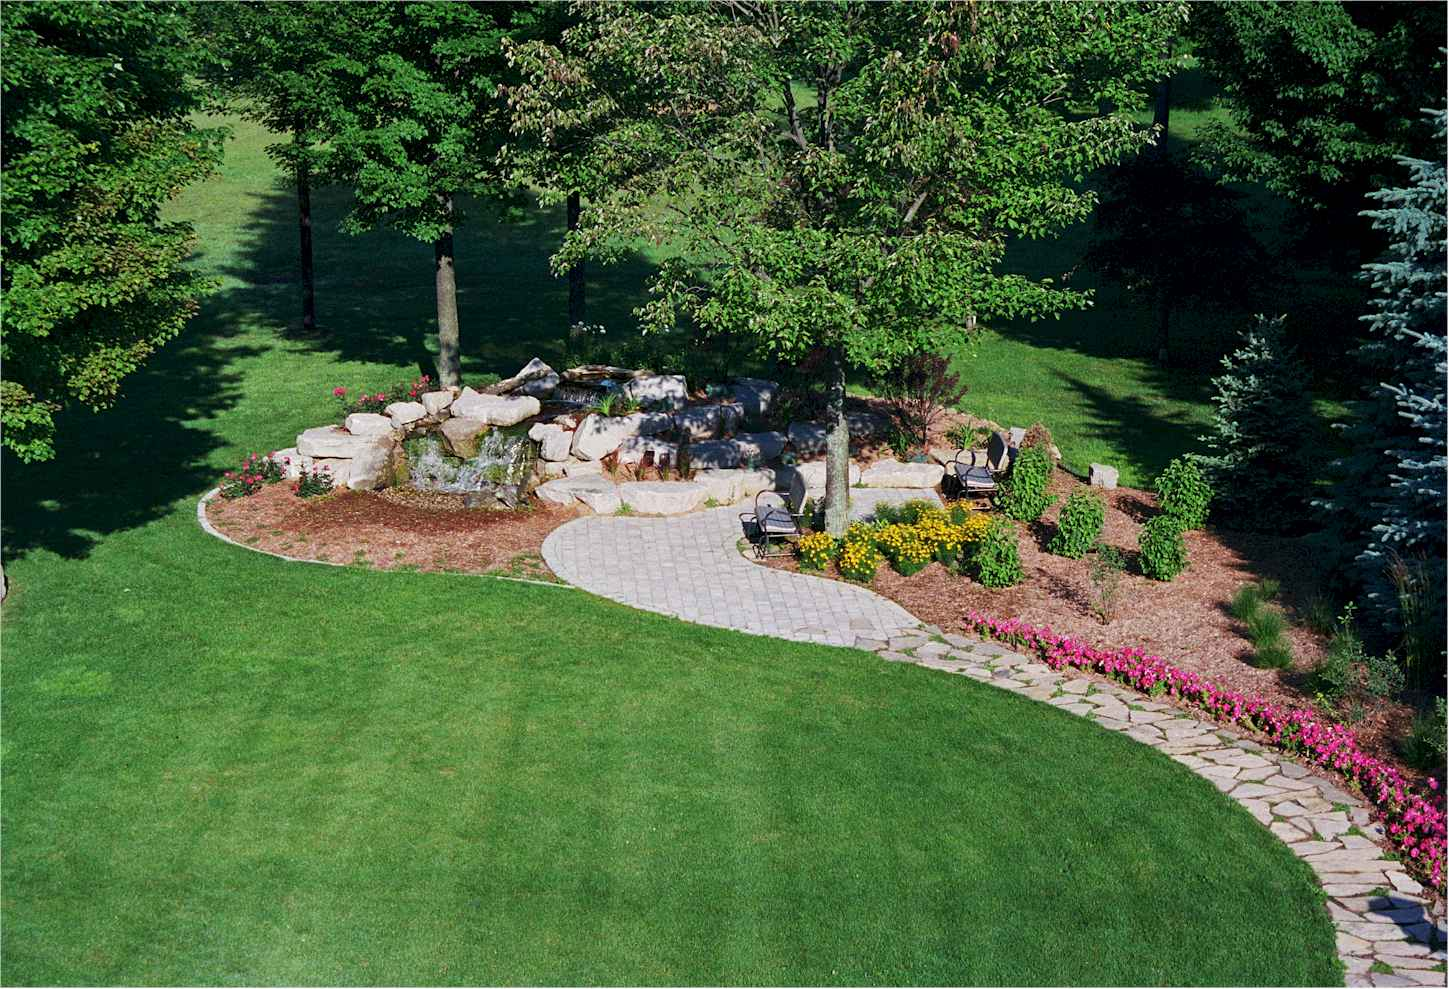 5 landscaping ideas to wow the neighbors for Backyard landscaping ideas